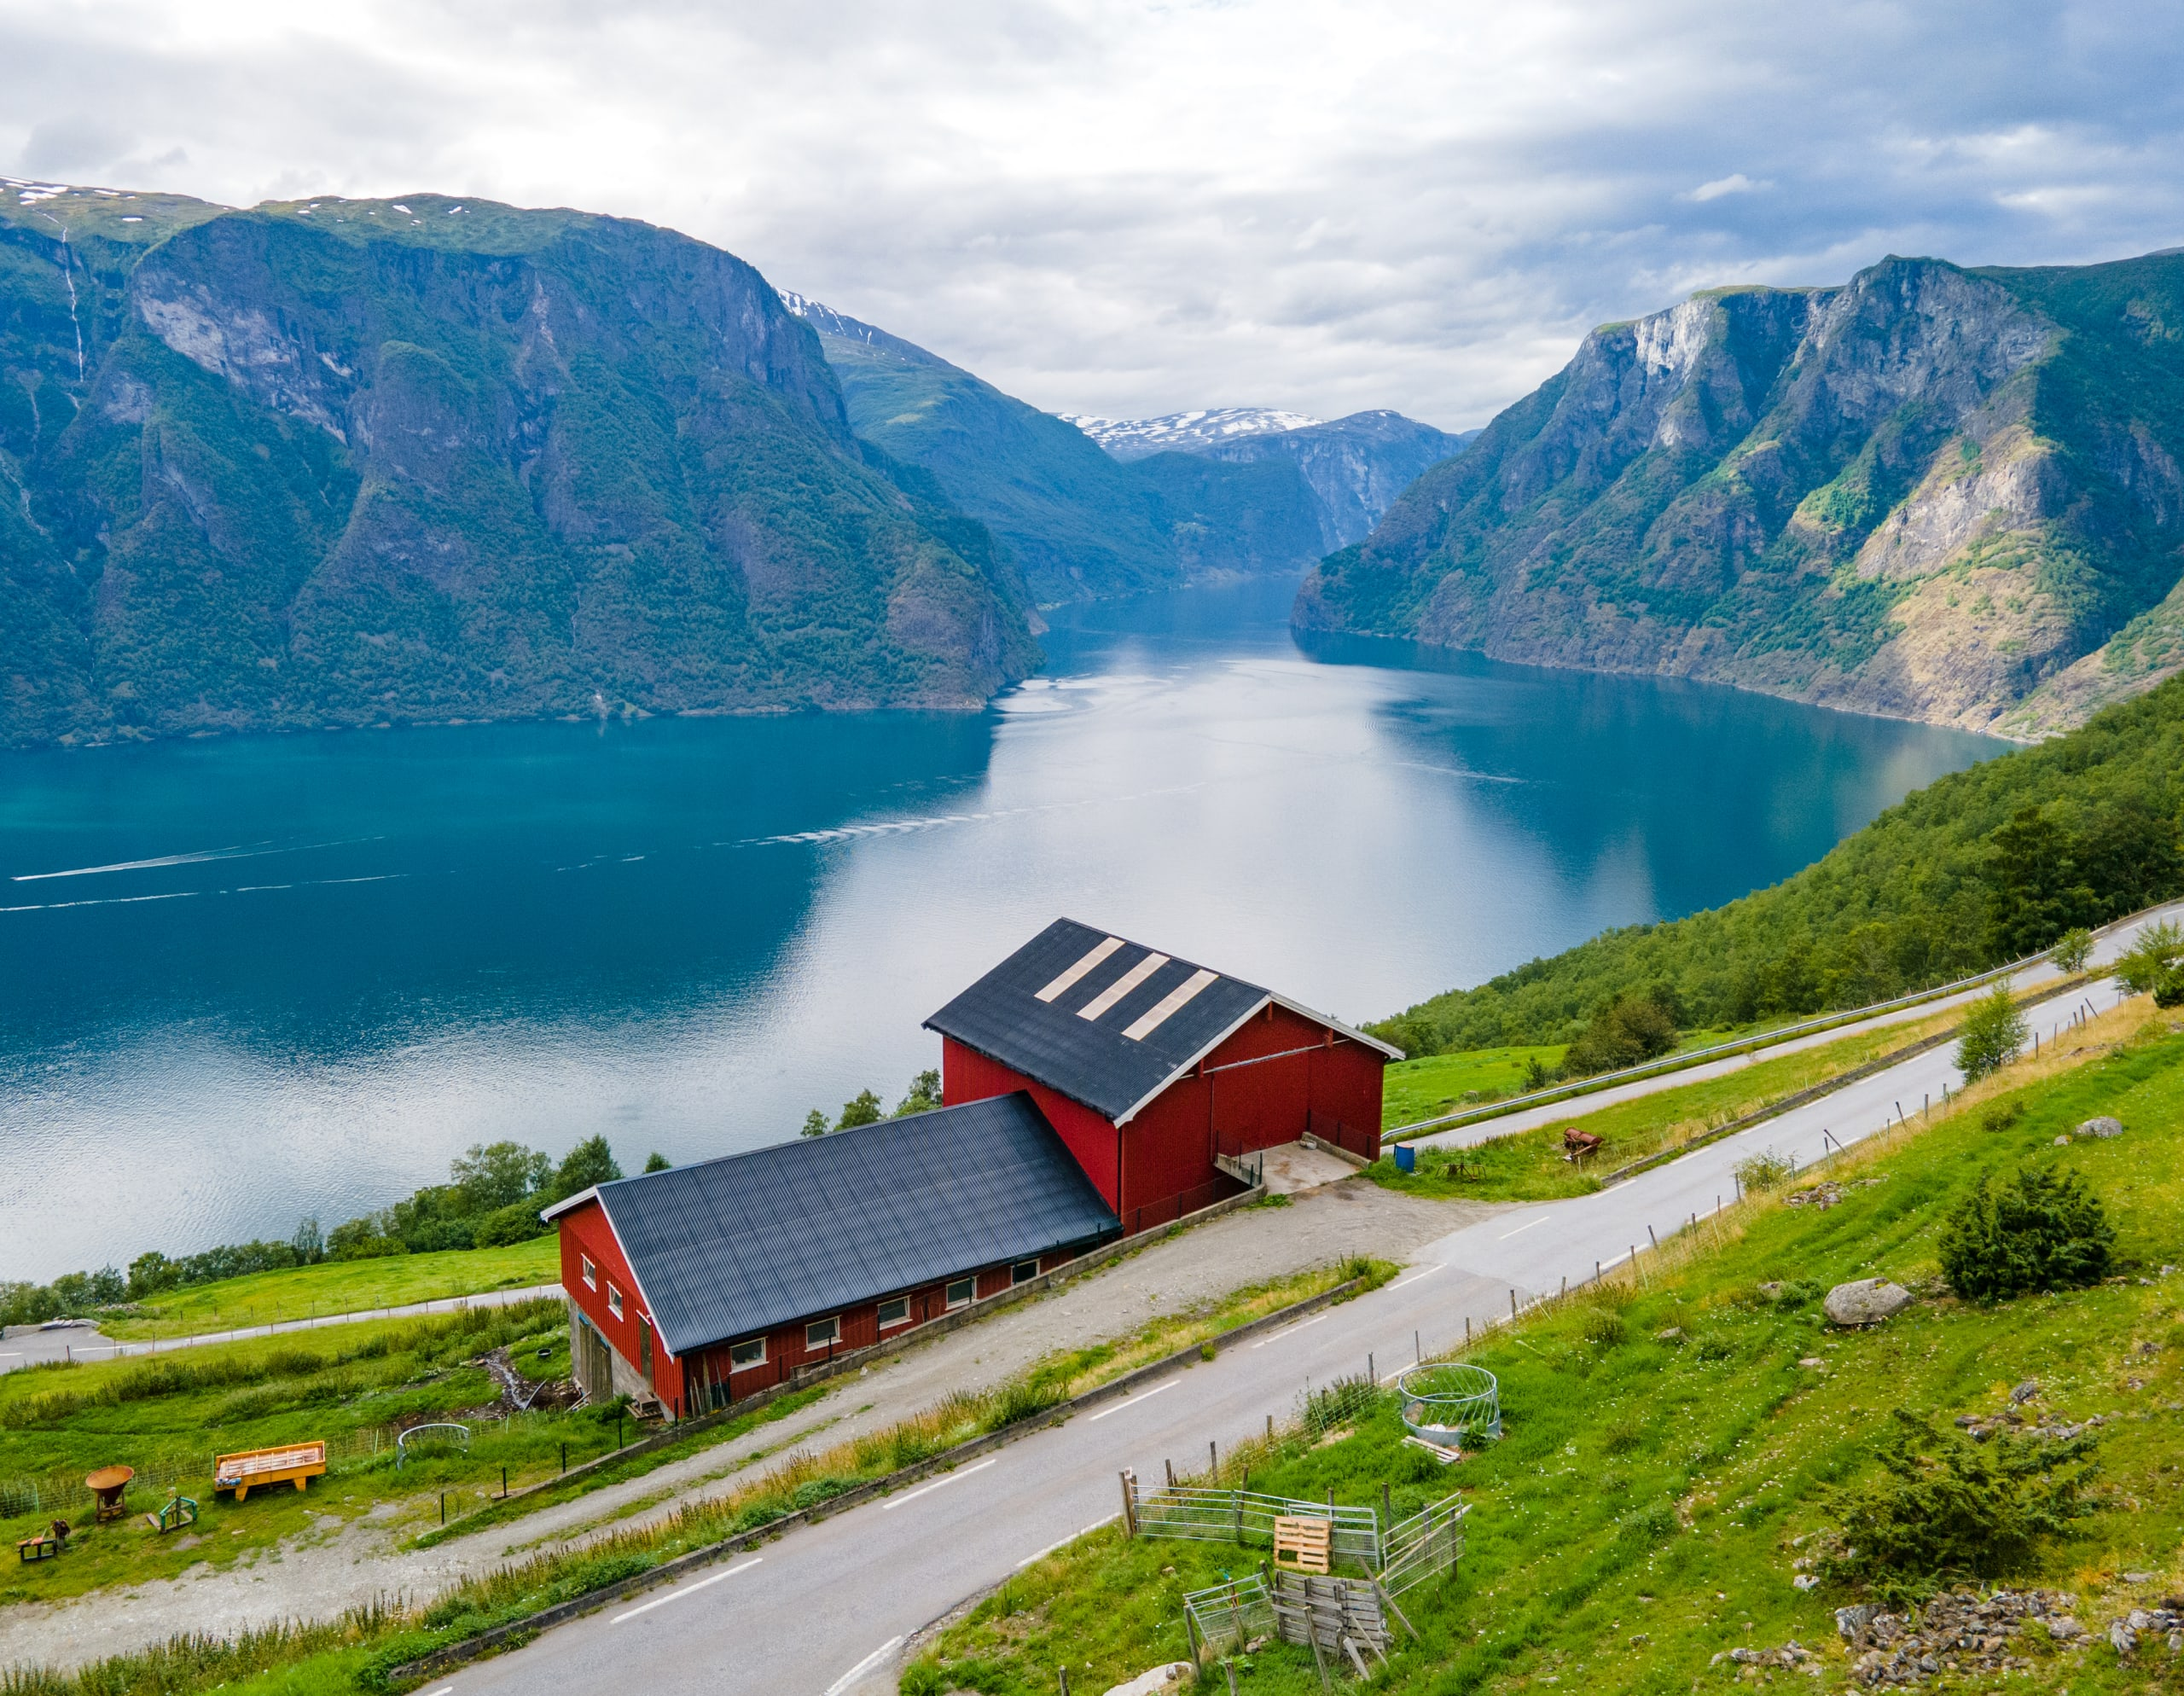 Farm along the beautiful Aurlandsfjord